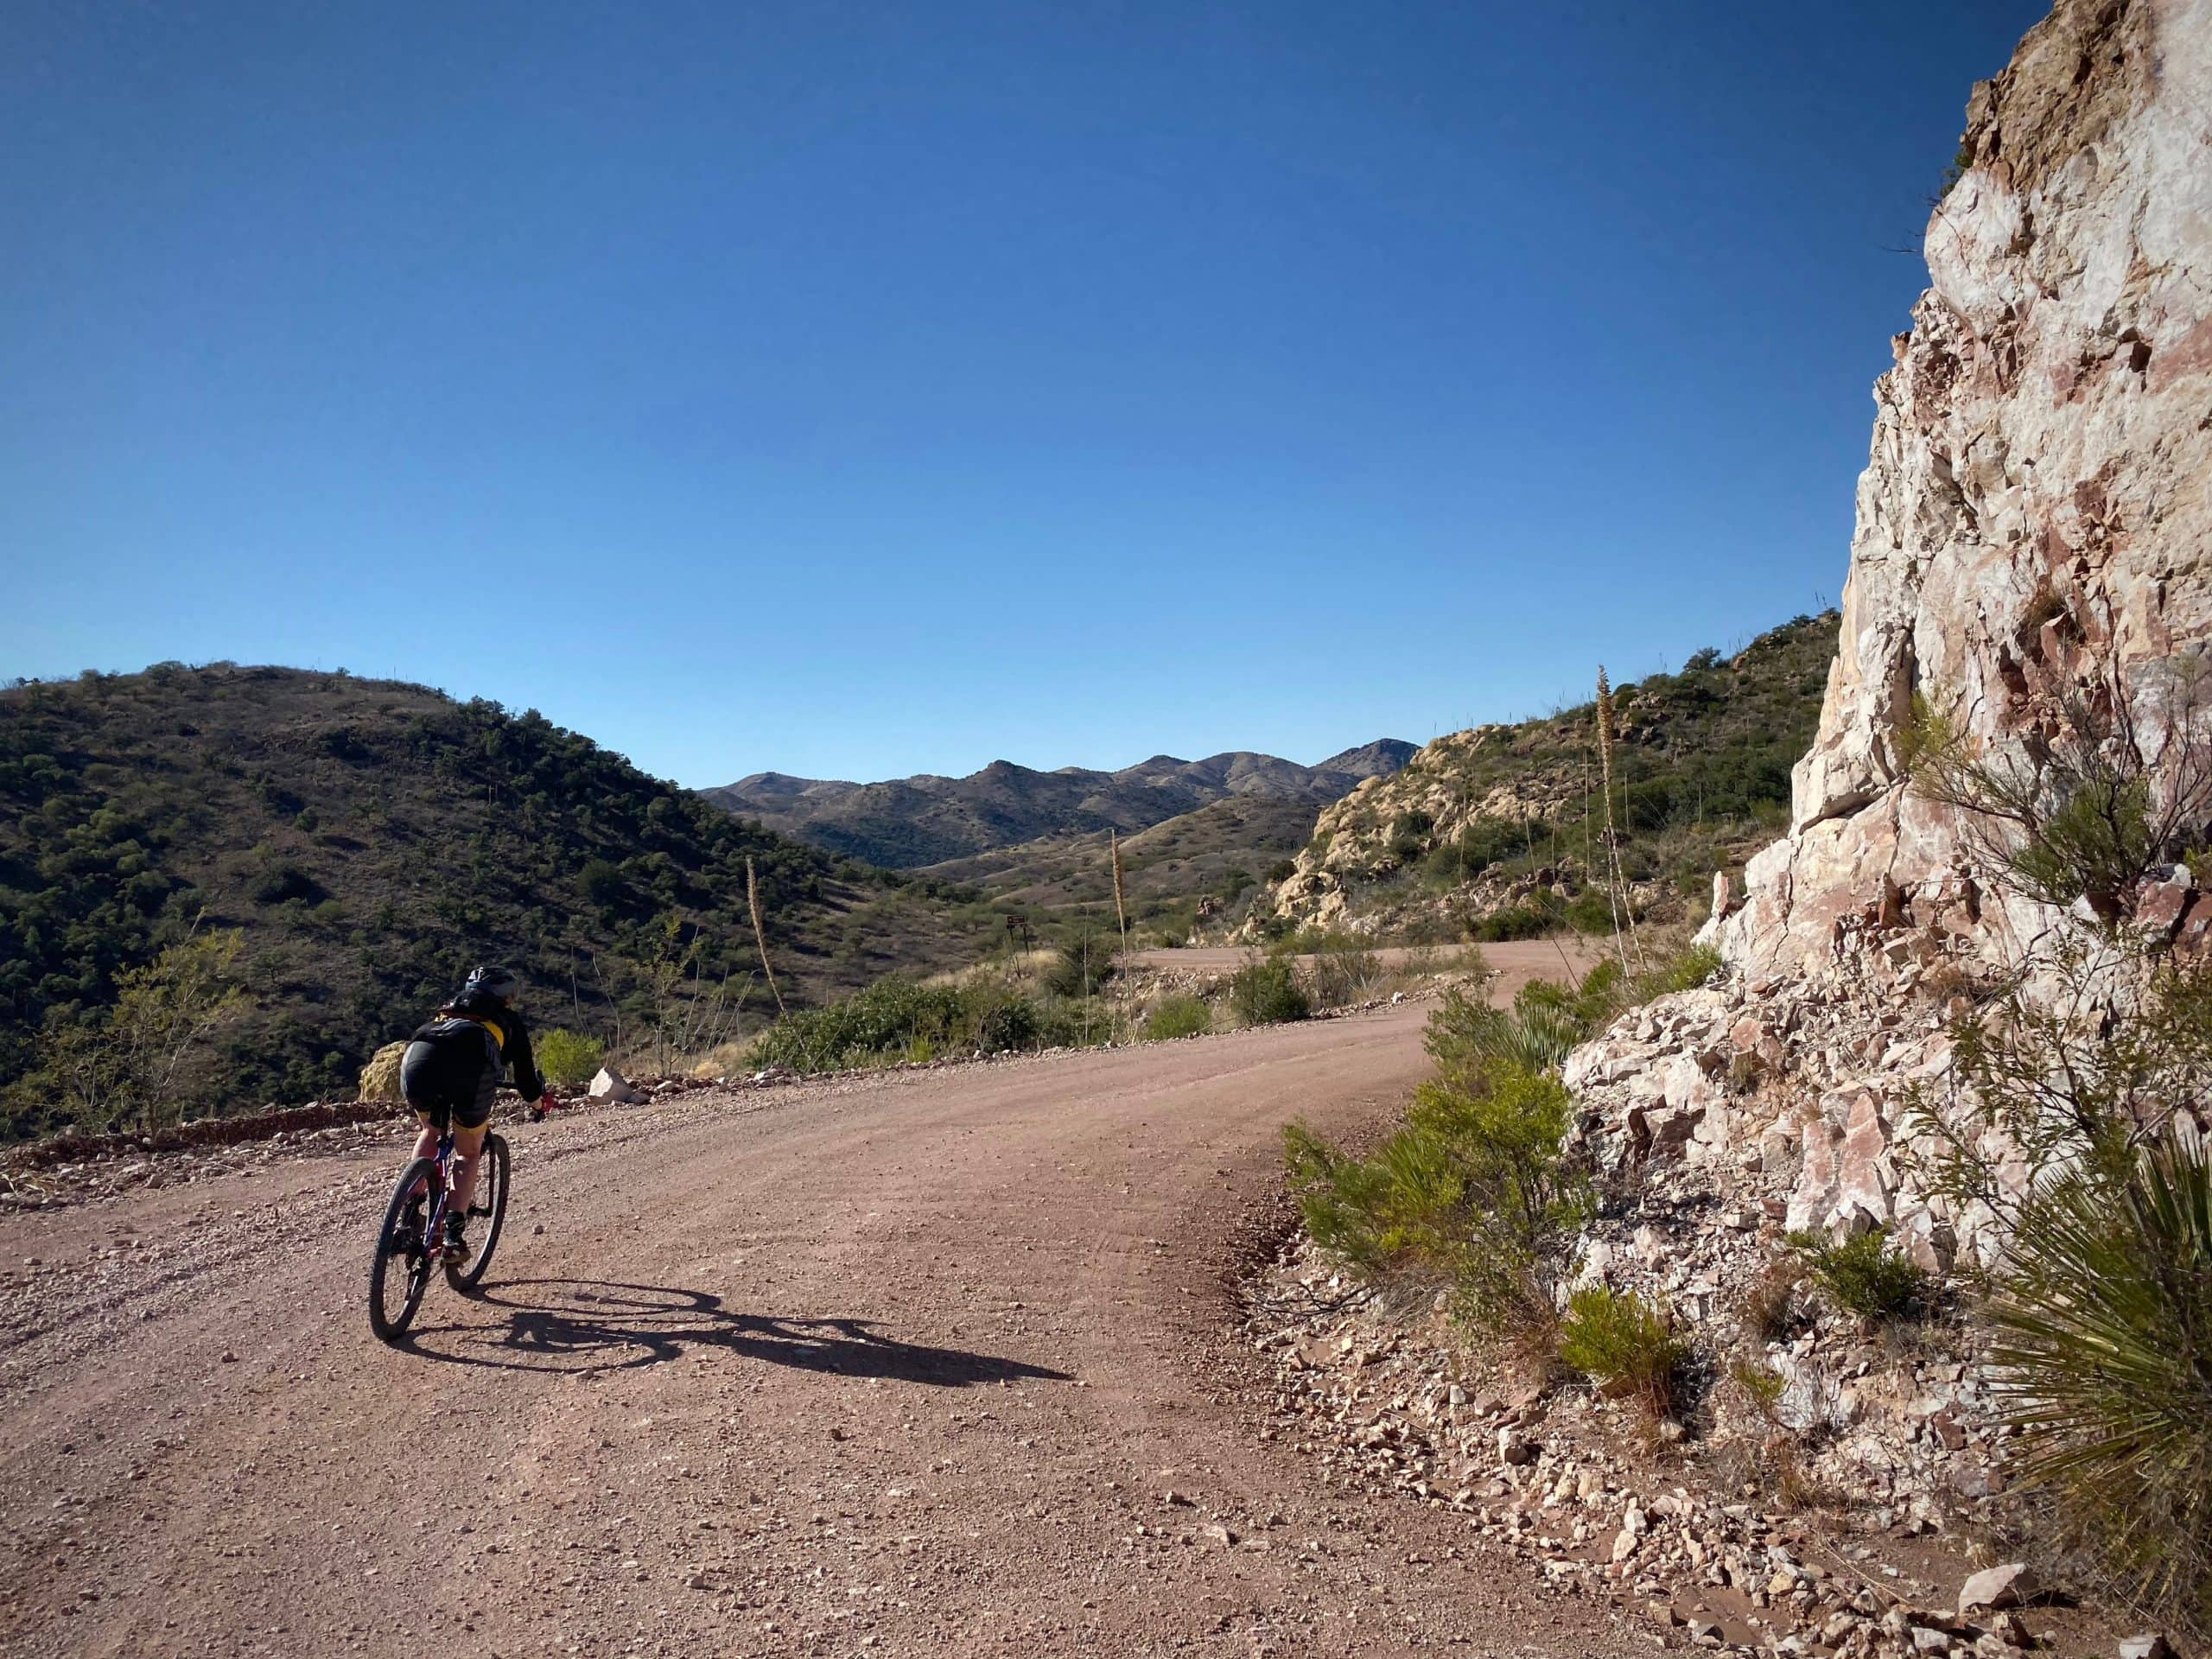 Cyclist on Ruby road, gravel, approaching the ghost town of Ruby in the Coronado National Forest.